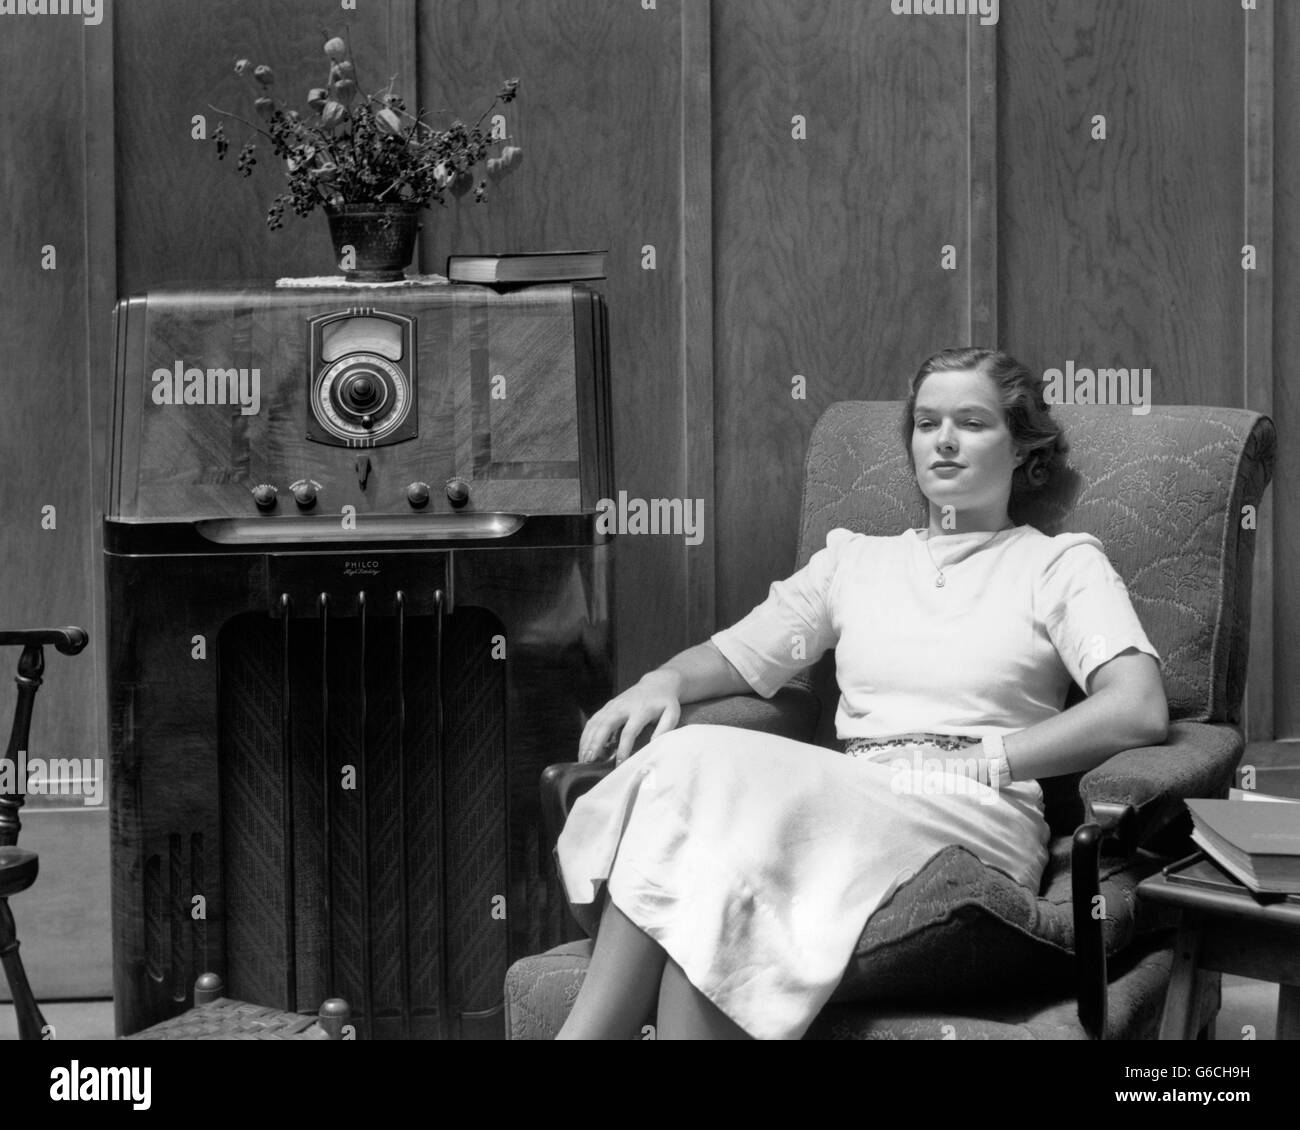 1930s 1940s SERIOUS WOMAN SITTING IN LIVING ROOM LISTENING TO RADIO - Stock Image